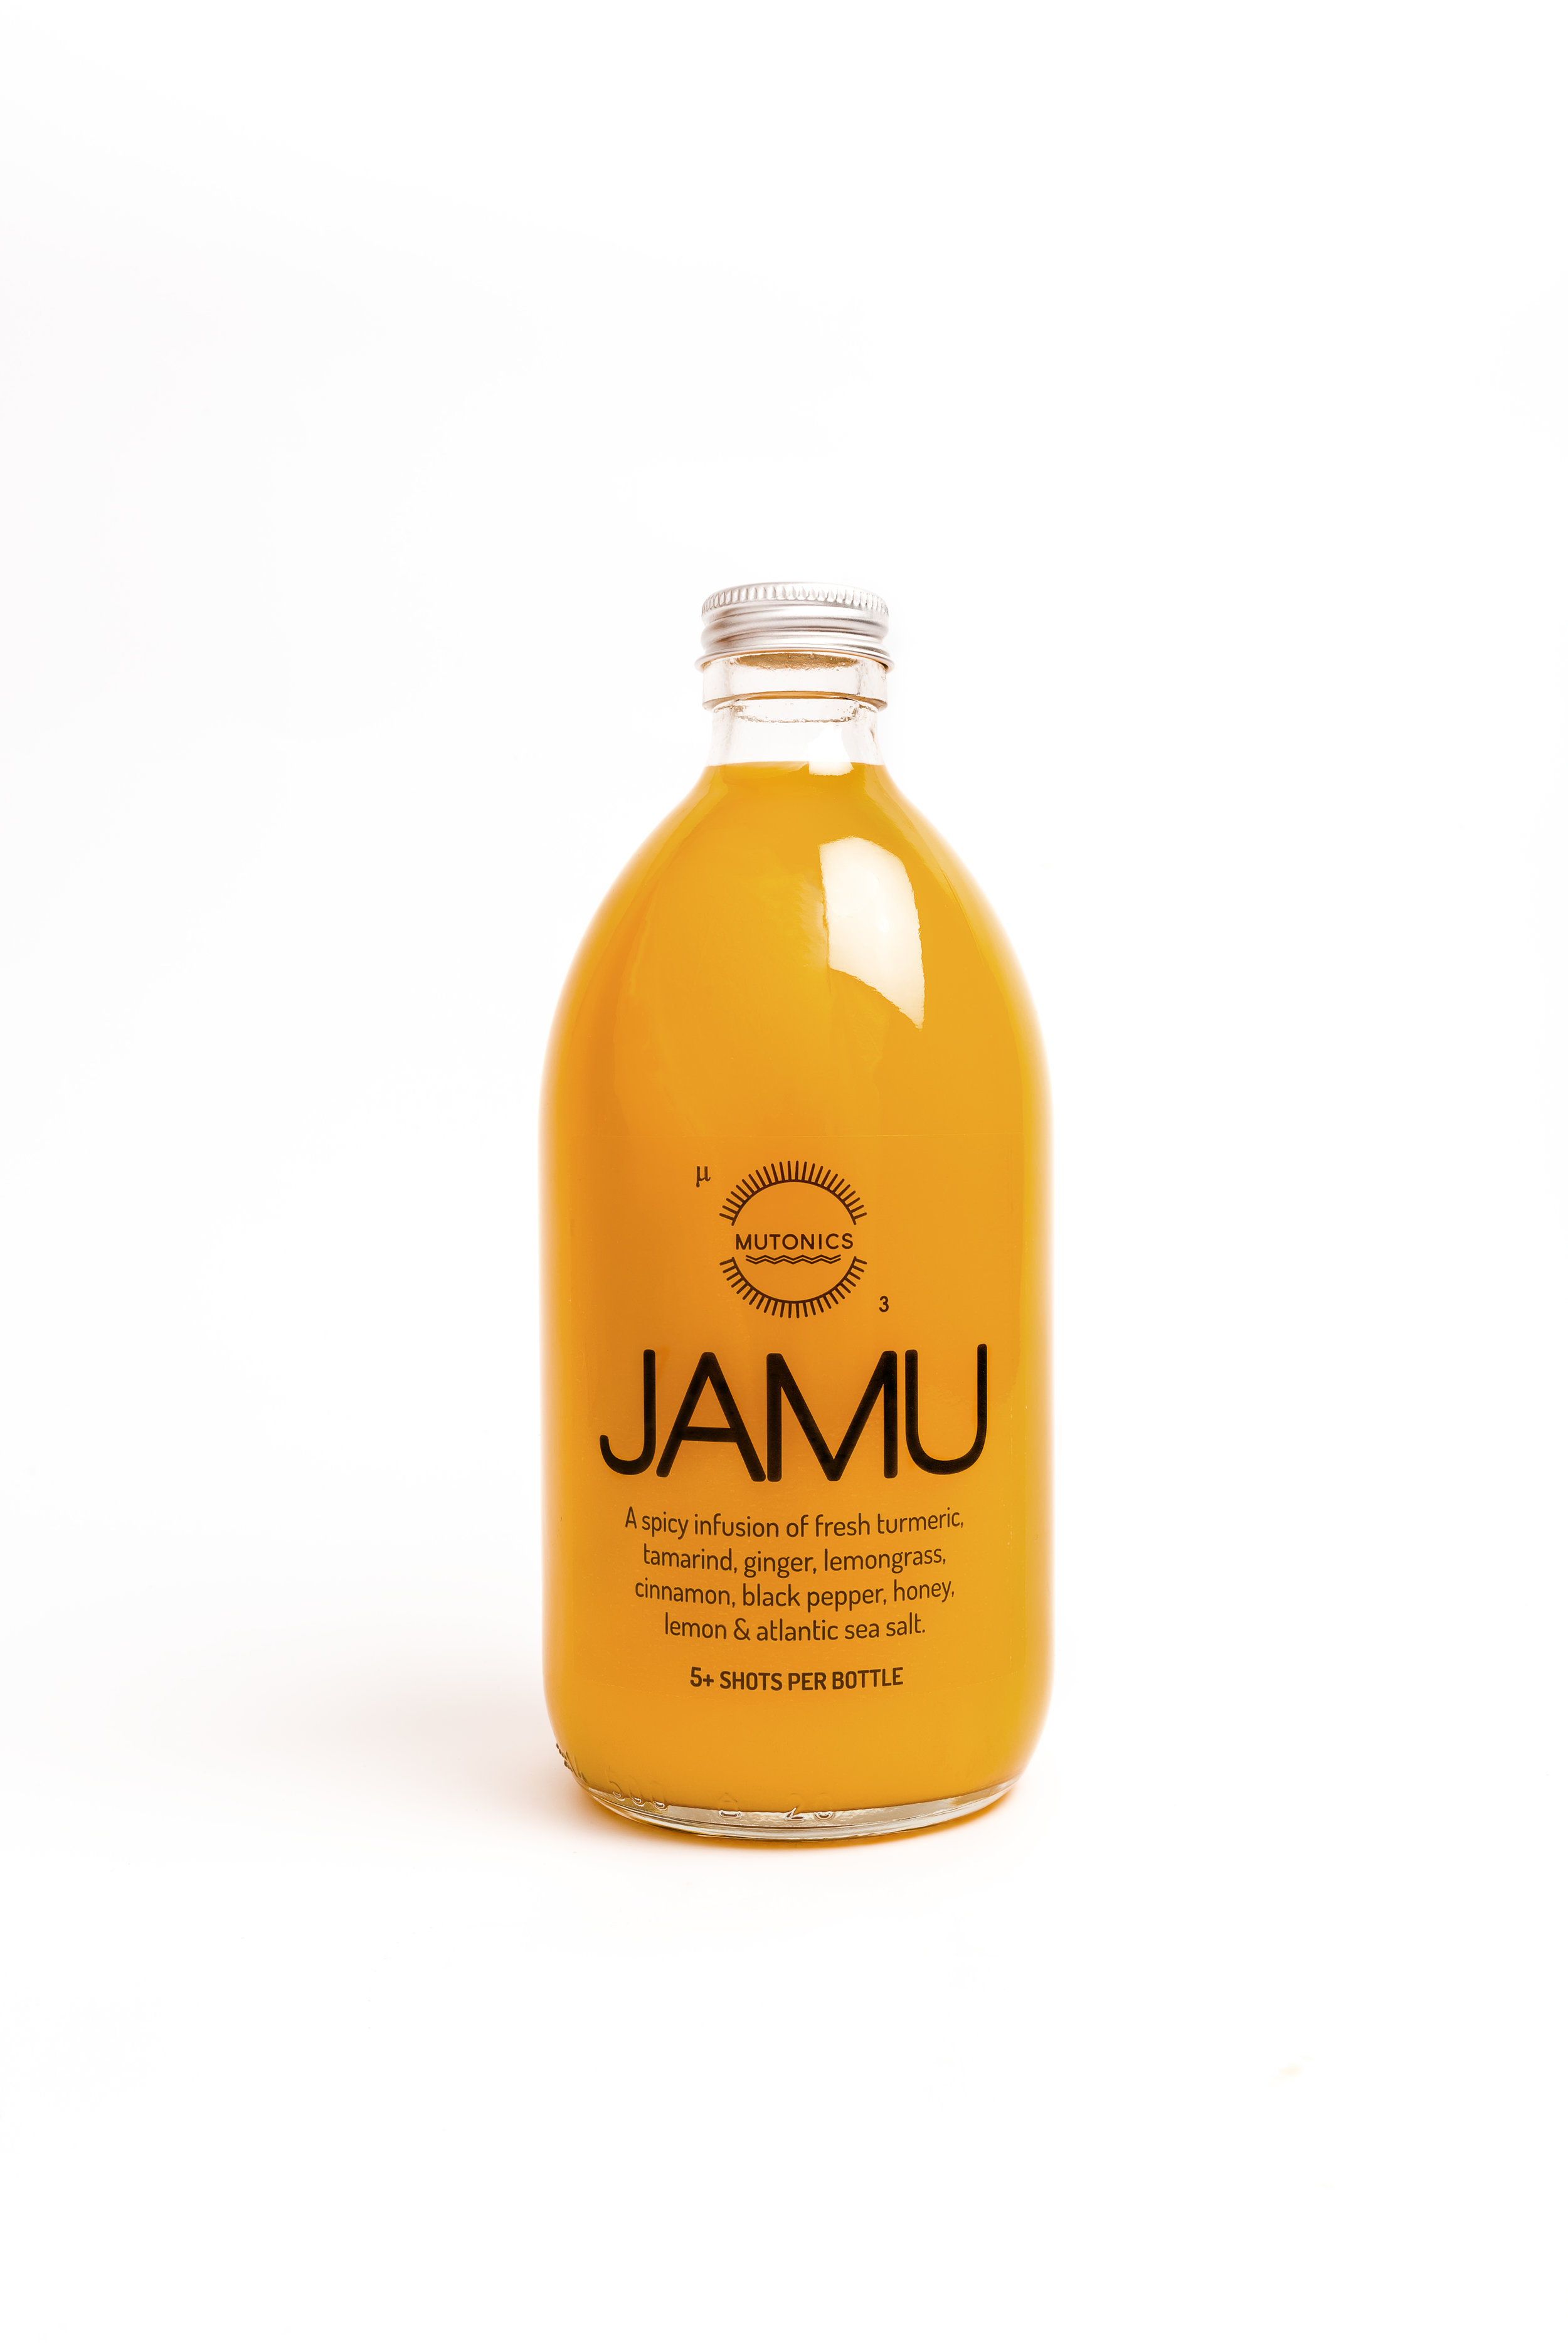 F.A.Q's - WHAT IS JAMU?It is an Indonesian health drink.  It's main ingredient is turmeric.  There are many variations on the recipe. We also add lots of ginger & tamarind, cinnamon, honey, lemongrass, black pepper & Atlantic sea salt.WHERE IS YOUR PRODUCTION FACILITY?West Cork, Ireland!!WHAT DOES JAMU TASTE LIKE?There is a comforting aromatic flavour from the fresh turmeric, a sweet/sour tang from tamarind, a peppery and spicy hit from the pepper & ginger - subtle hints of cinnamon & lemongrass and a refreshing citrus burst from lemons. We add a small amount of honey to bring a balance to the strong flavours but it is not at all sweet - we constantly have to tell consumers that it is not a juice. WHEN DO YOU DELIVER?We send out Monday - Thursday using next day delivery courier service.IS THERE A RECOMMENDED AMOUNT I SHOULD TAKEYou can drink as much or as little as you like but we recommend a small glass first thing in the morning. it's also good post work out or in the morning after a big night out!!WHAT ARE THE BENEFITS OF EATING TURMERIC?It's a wonder spice that has been used for thousands of years for it's beneficial health properties. Supplementing turmeric in to your diet can benefit the whole body. It is most famous for it's anti inflammatory qualities but research shows that it is high in antioxidants and is said it can help your body to repair cells. It is also said to help boost the immune system and is good for the skin and digestive system. Turmeric is also a great prebiotic - this means it helps feed the good bacteria in our guts which in turn can improve your mood and energyWe love turmeric and turmeric loves us!HOW MUCH TURMERIC IS IN EACH 500ml BOTTLE?Each of our 500ml bottle contains 3,700mg of turmeric and contains enough for a 100ml shot for 5 days.DO I DRINK IT STRAIGHT OR DO I DILUTE IT?No need to dilute but of course you can. Some suggestions: It is lovely warm - 1 part Jamu to 1 part hot water.  It is also nice used in a Golden Milk recipe.  Another good use is to put a shot in to your water bottle to take with you when you exercise.Is Jamu a Juice?It is not a Juice!When making Jamu we use a cooking process to release the Curcumin (the active compound within turmeric) and make it more easily absorbed.Fresh root turmeric plays very hard to get when it comes to nourishing us so it is good to know a few tricks..Cooking is one of the best tricks. Fresh turmeric eaten raw makes actually makes our system work harder.Why do you add black pepper?Well, the truth is there is not much point having turmeric without it! Piperine, the chemical compound found in pepper lends a hand in getting curcumin through the intestinal wall and in to the bloodstream. Essentially, pepper helps us to absorb the beneficial Curcumin within turmeric.Why is there salt in your JAMU?The potassium from turmeric and the addition of Atlantic sea salt create the perfect re-hydrating, post-workout recovery beverage that restores your body's electrolytes to healthy levels.How long does Jamu keep?It has a 21 day shelf life. As soon as it is opened it should be refrigerated and consumed within a week. Mainly to get the goodness into you,How should I store my JAMU?Keep it chilled in the fridge until you're ready to consume it. Avoid leaving it out in the heat or in direct sunlight for extended periods of time.